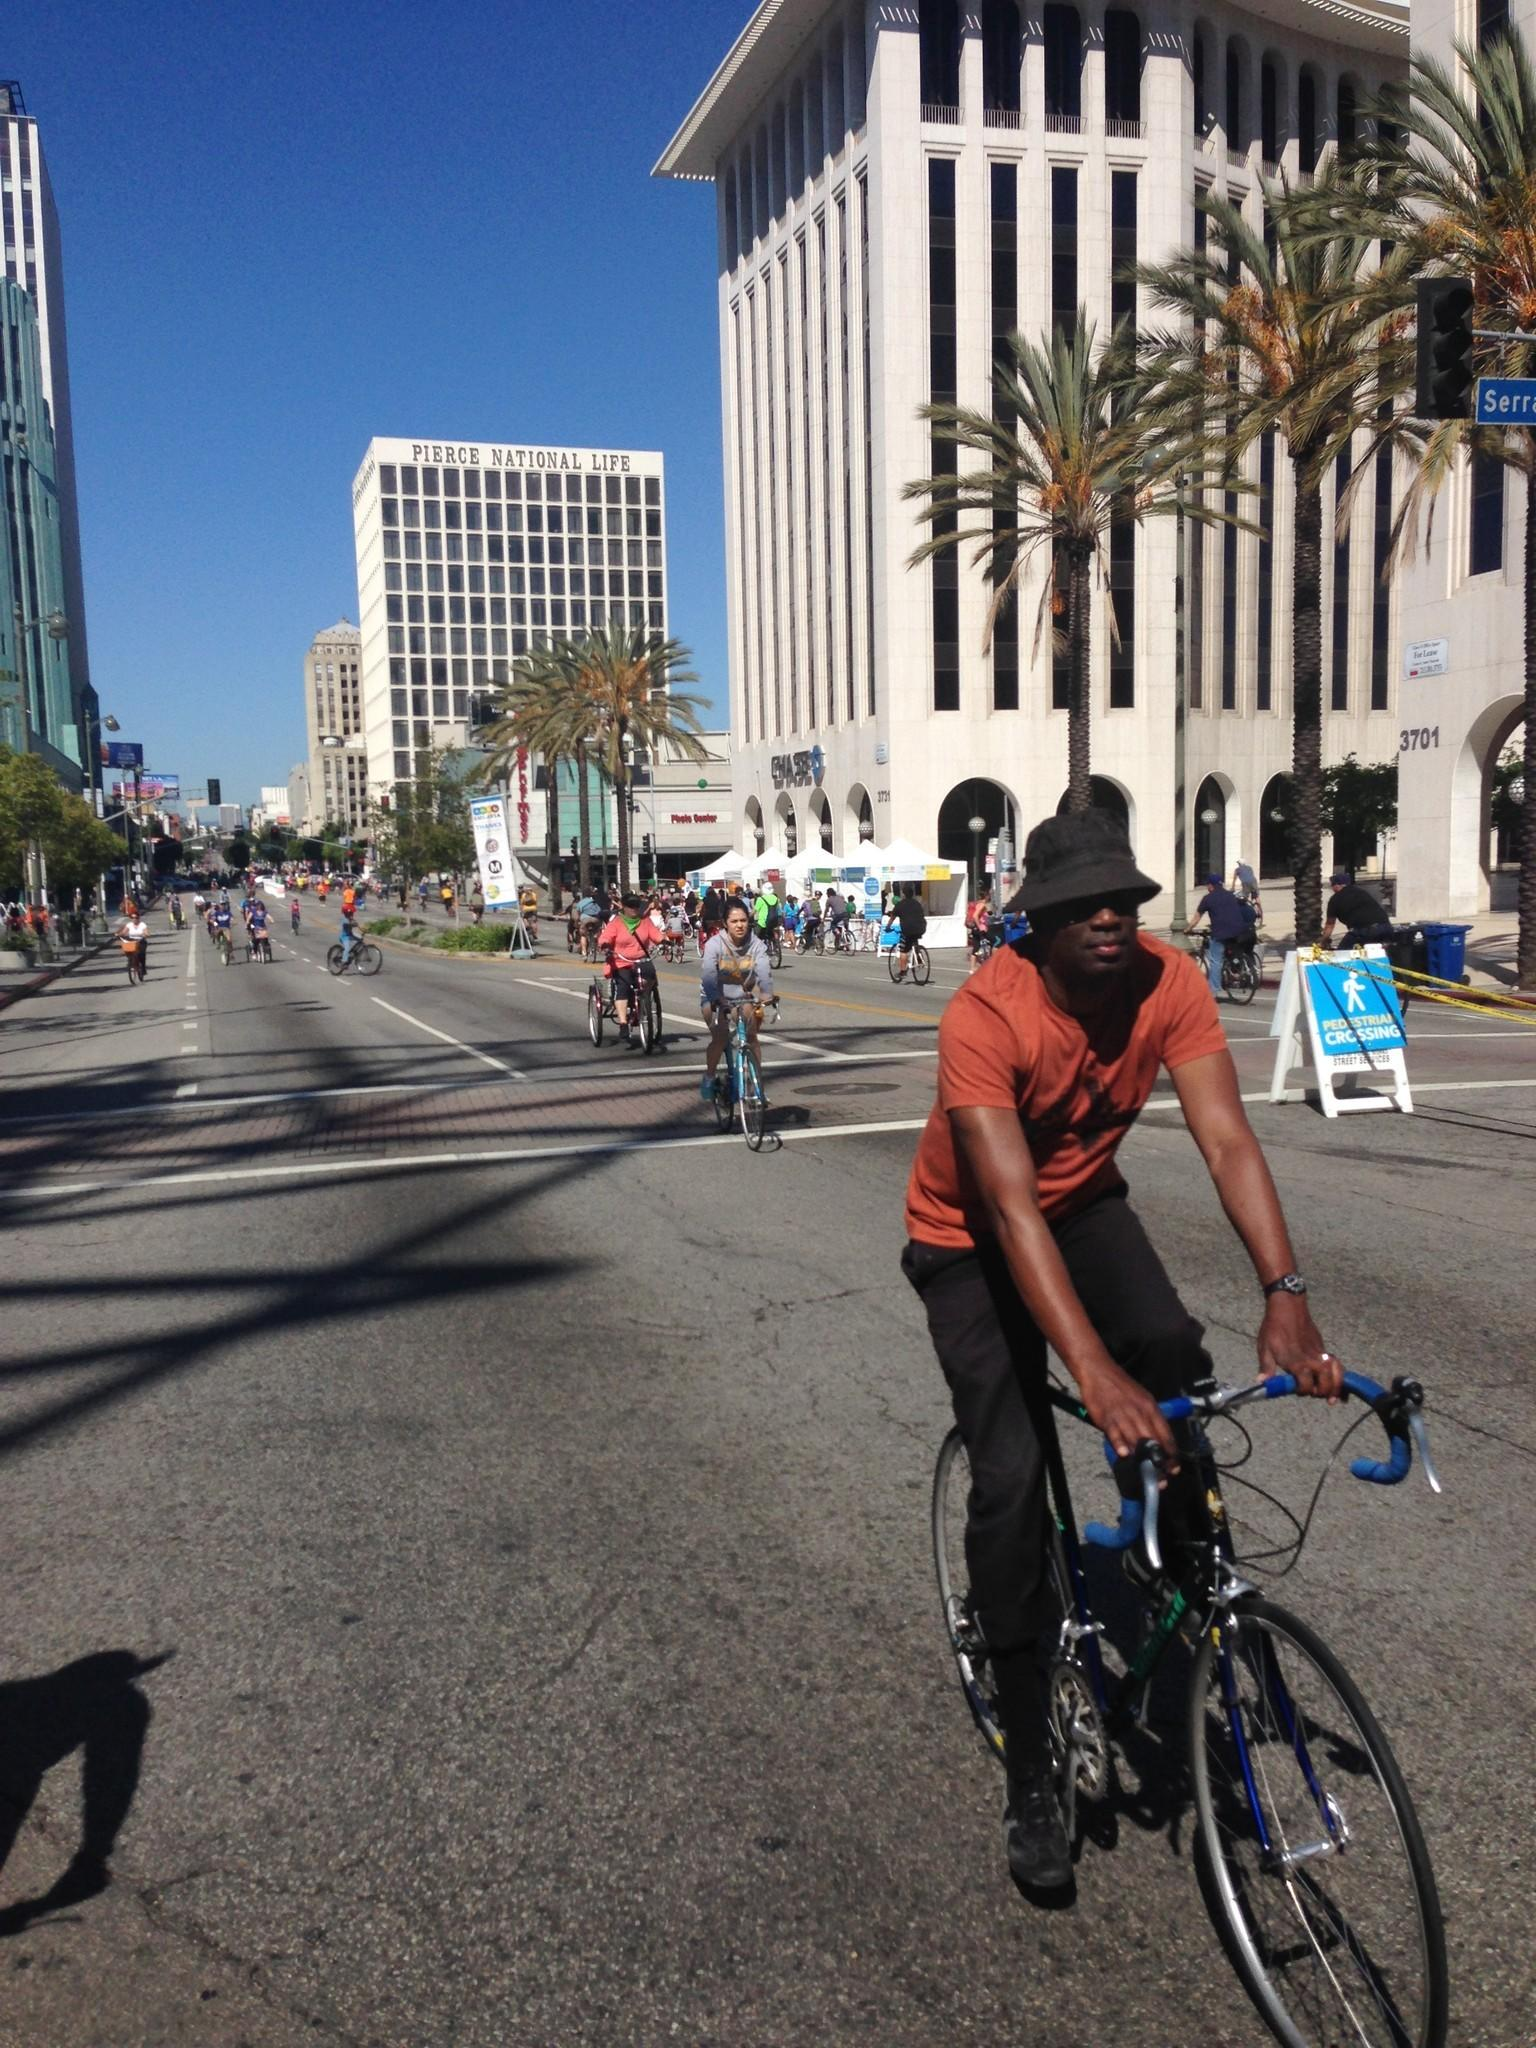 Cyclists make their way down Wilshire Boulevard in Koreatown.